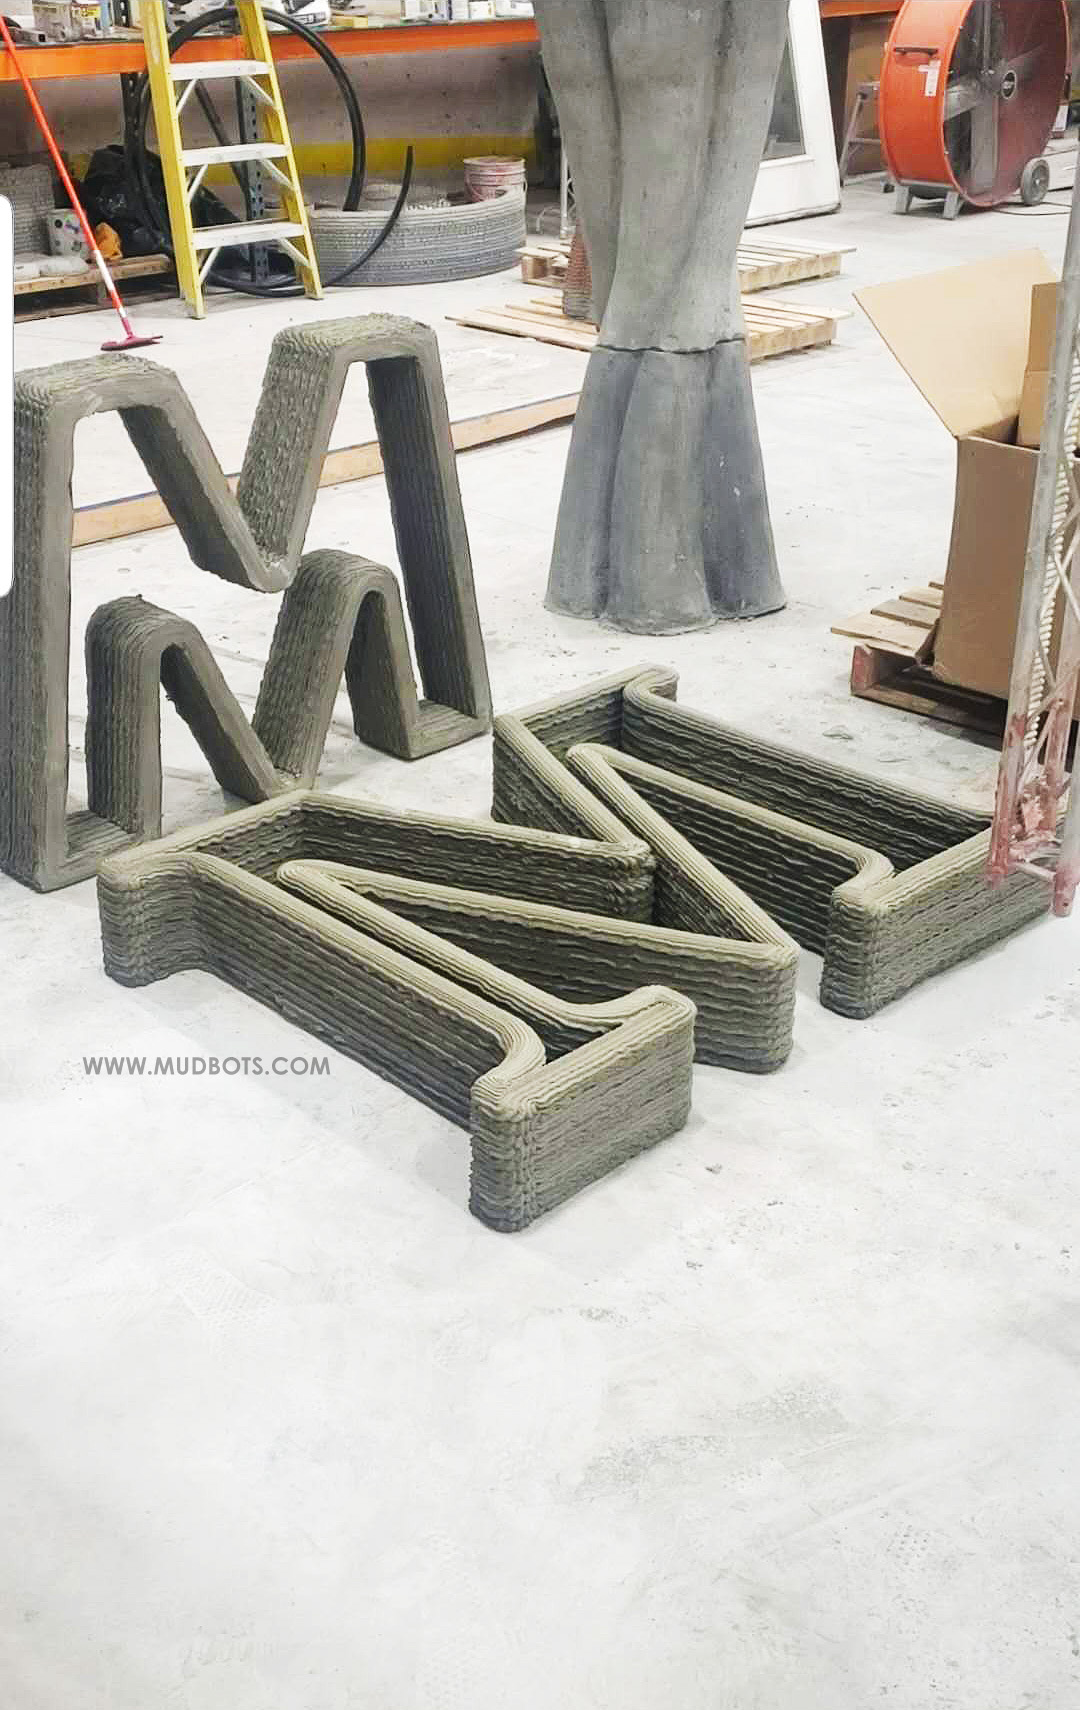 3D Print large letters made with concrete by using Mudbots 3D Concrete Printing technology